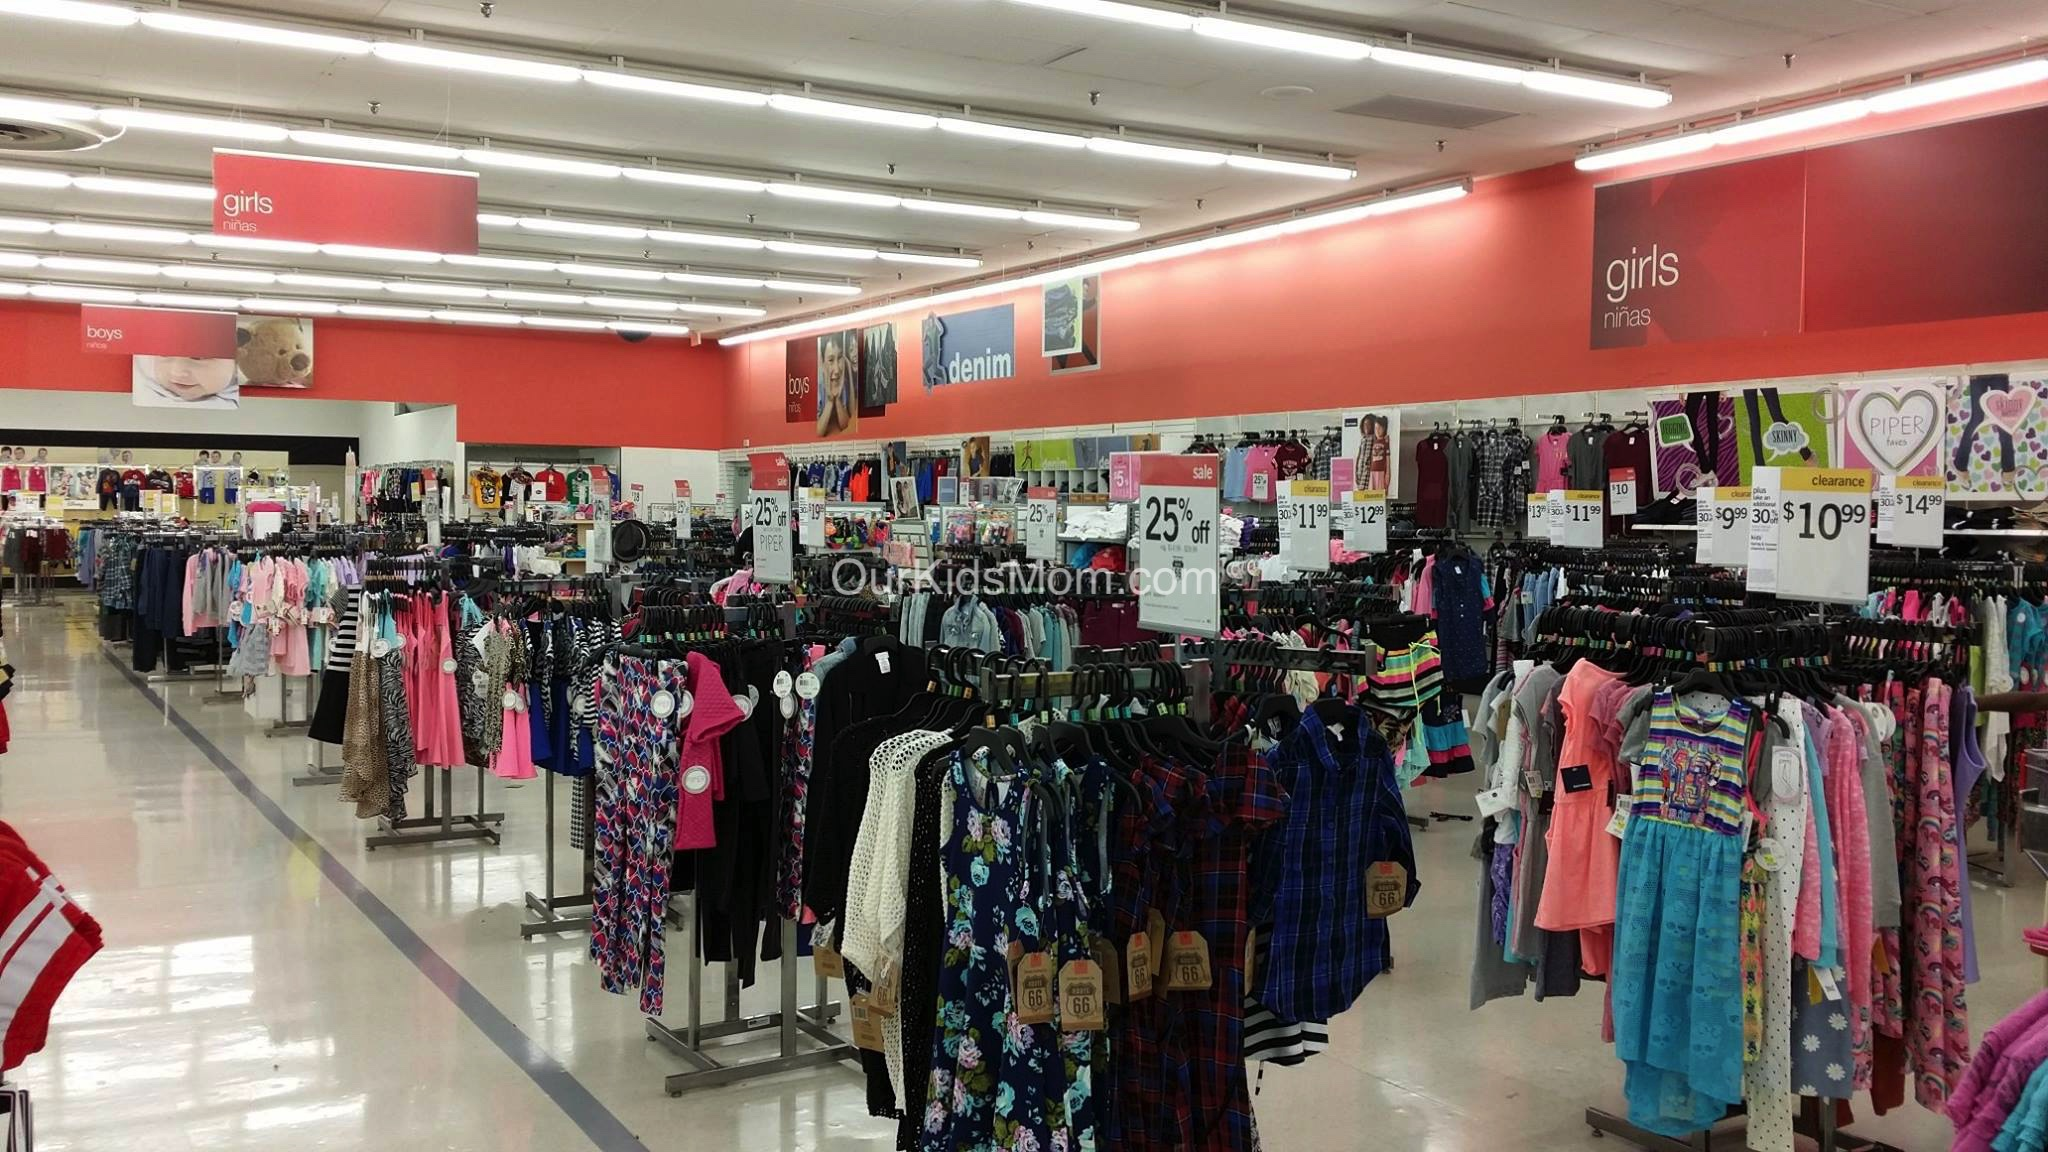 Oct 03,  · Watch video · Customers shop at a Kmart store on Aug. 24, in Elmhurst, Illinois. Sears Holdings Corporation, the owner of Kmart, said today it was planning on closing another 28 Kmart store including this.